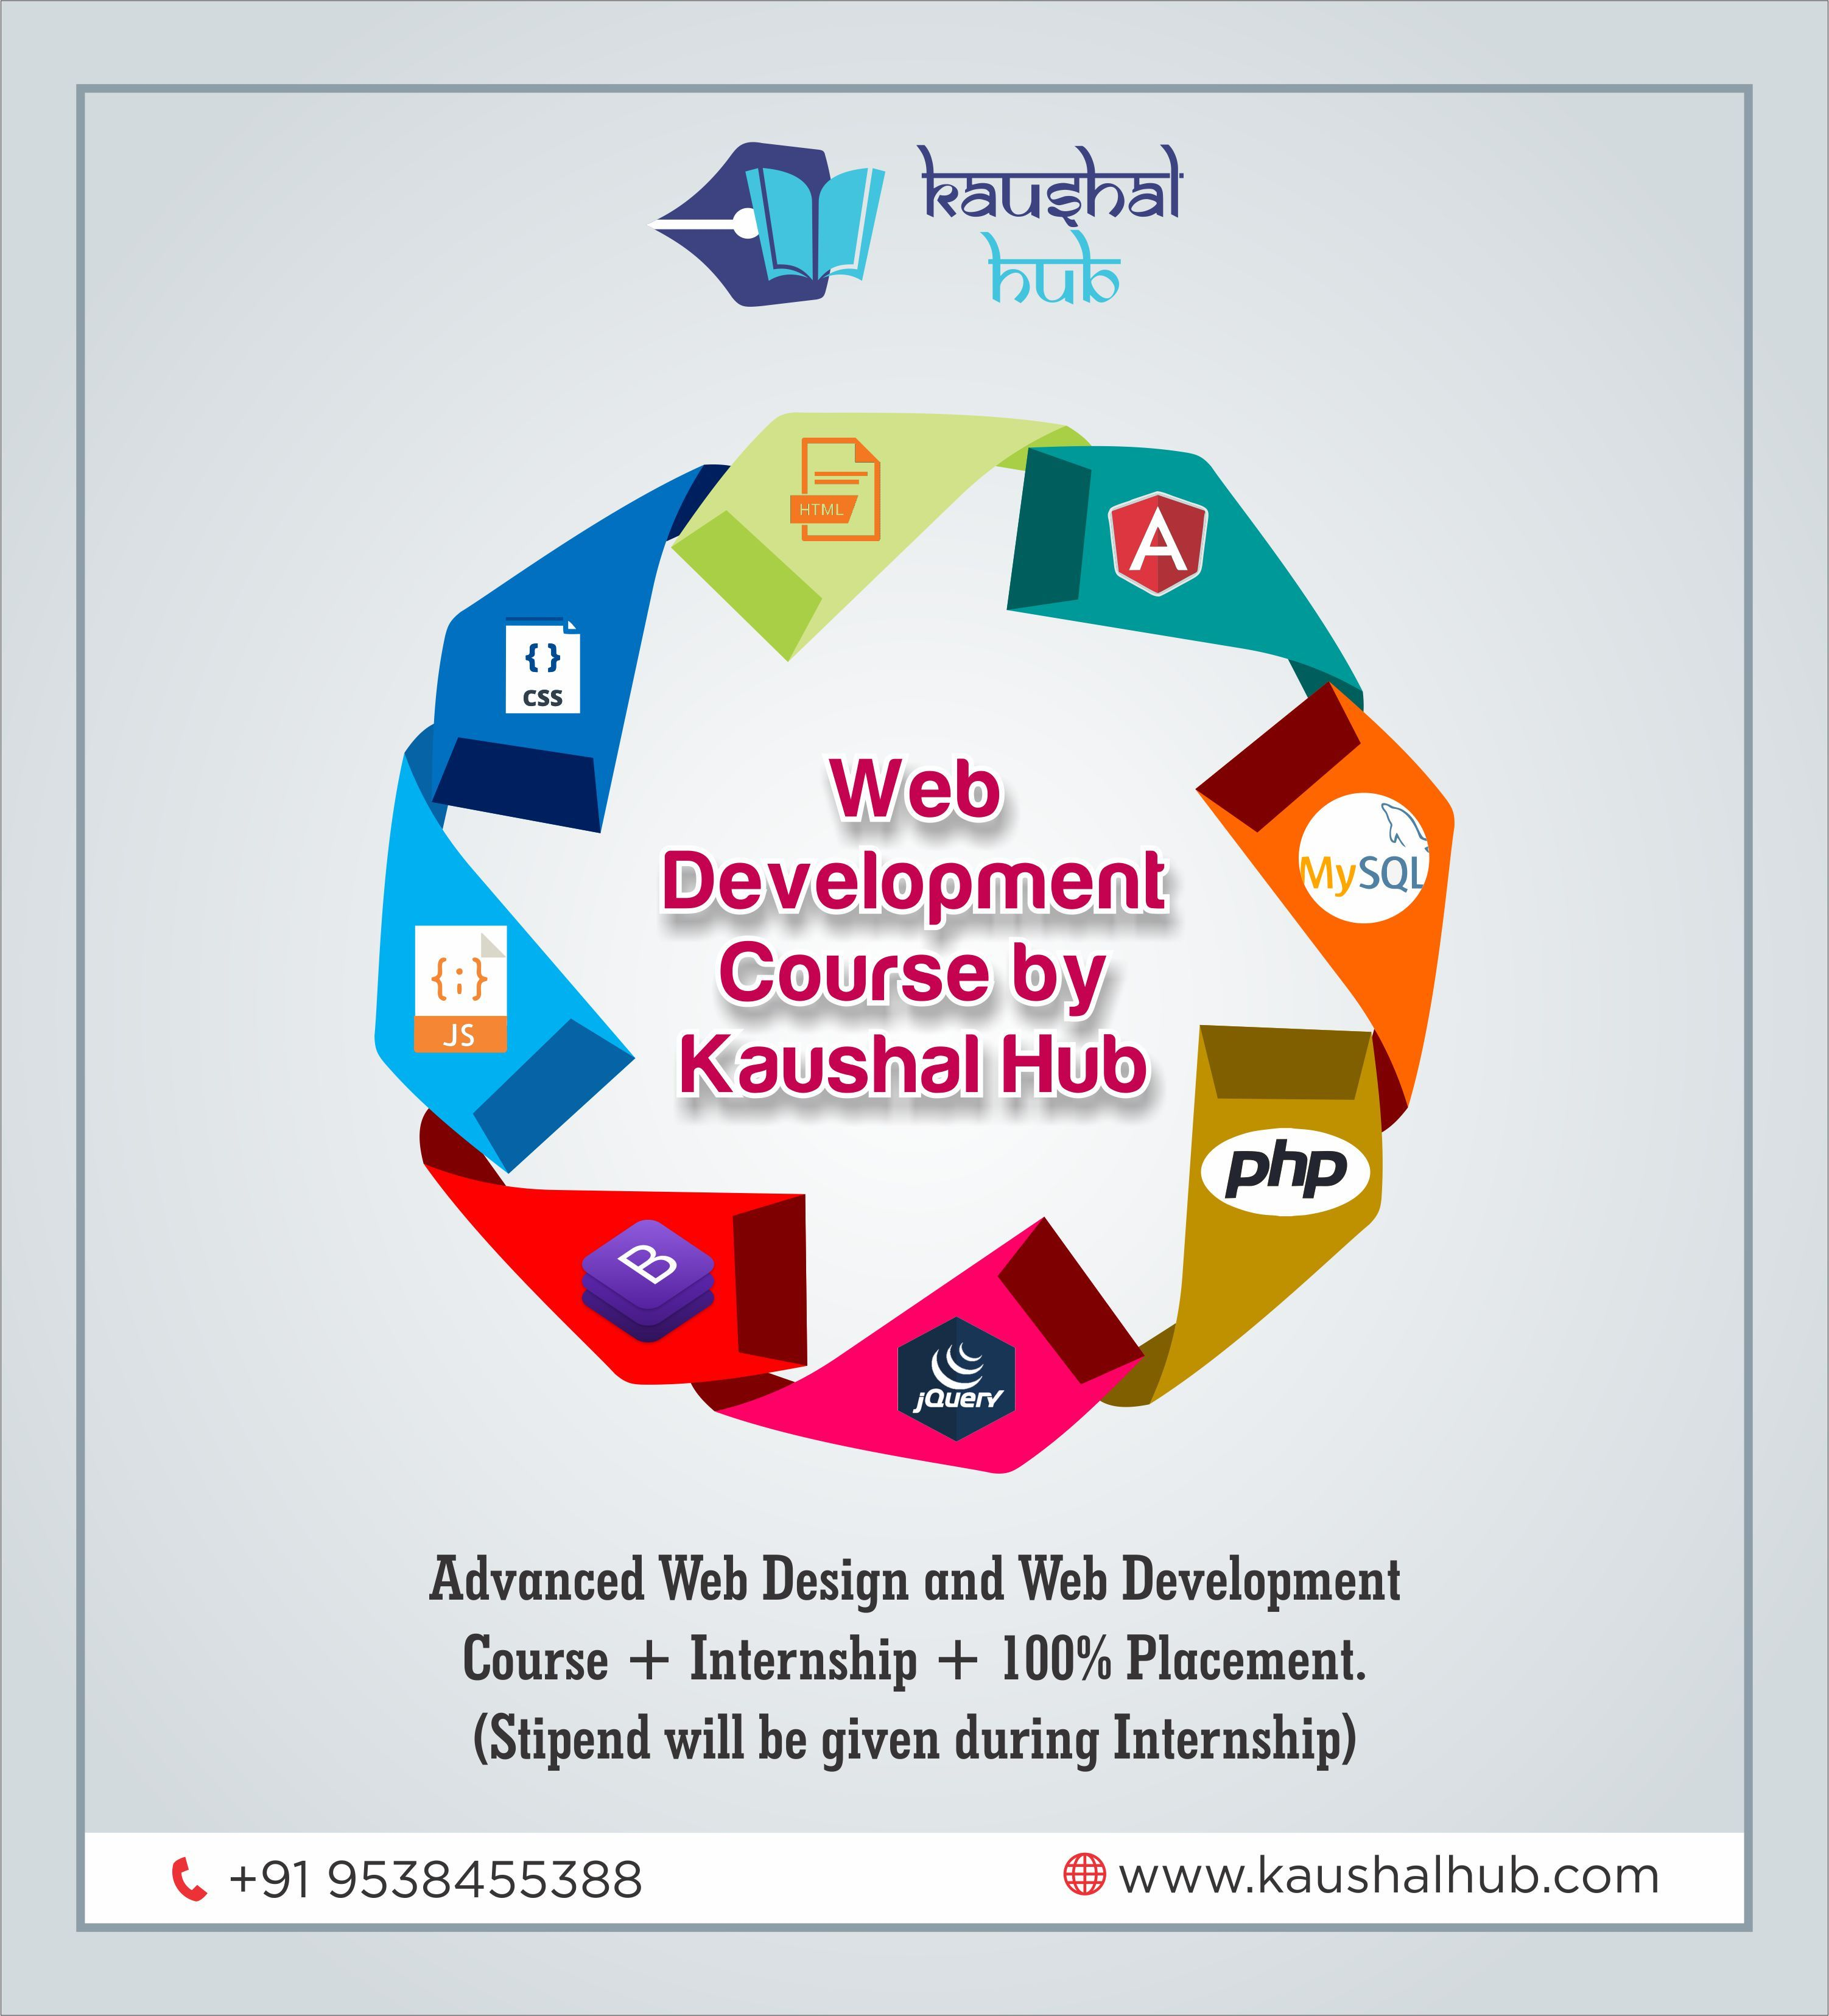 Web Development Course Offered By Kaushalhub Html Css Javascript Bootstrap Jquery Php Mysql Web Development Course Web Development Development